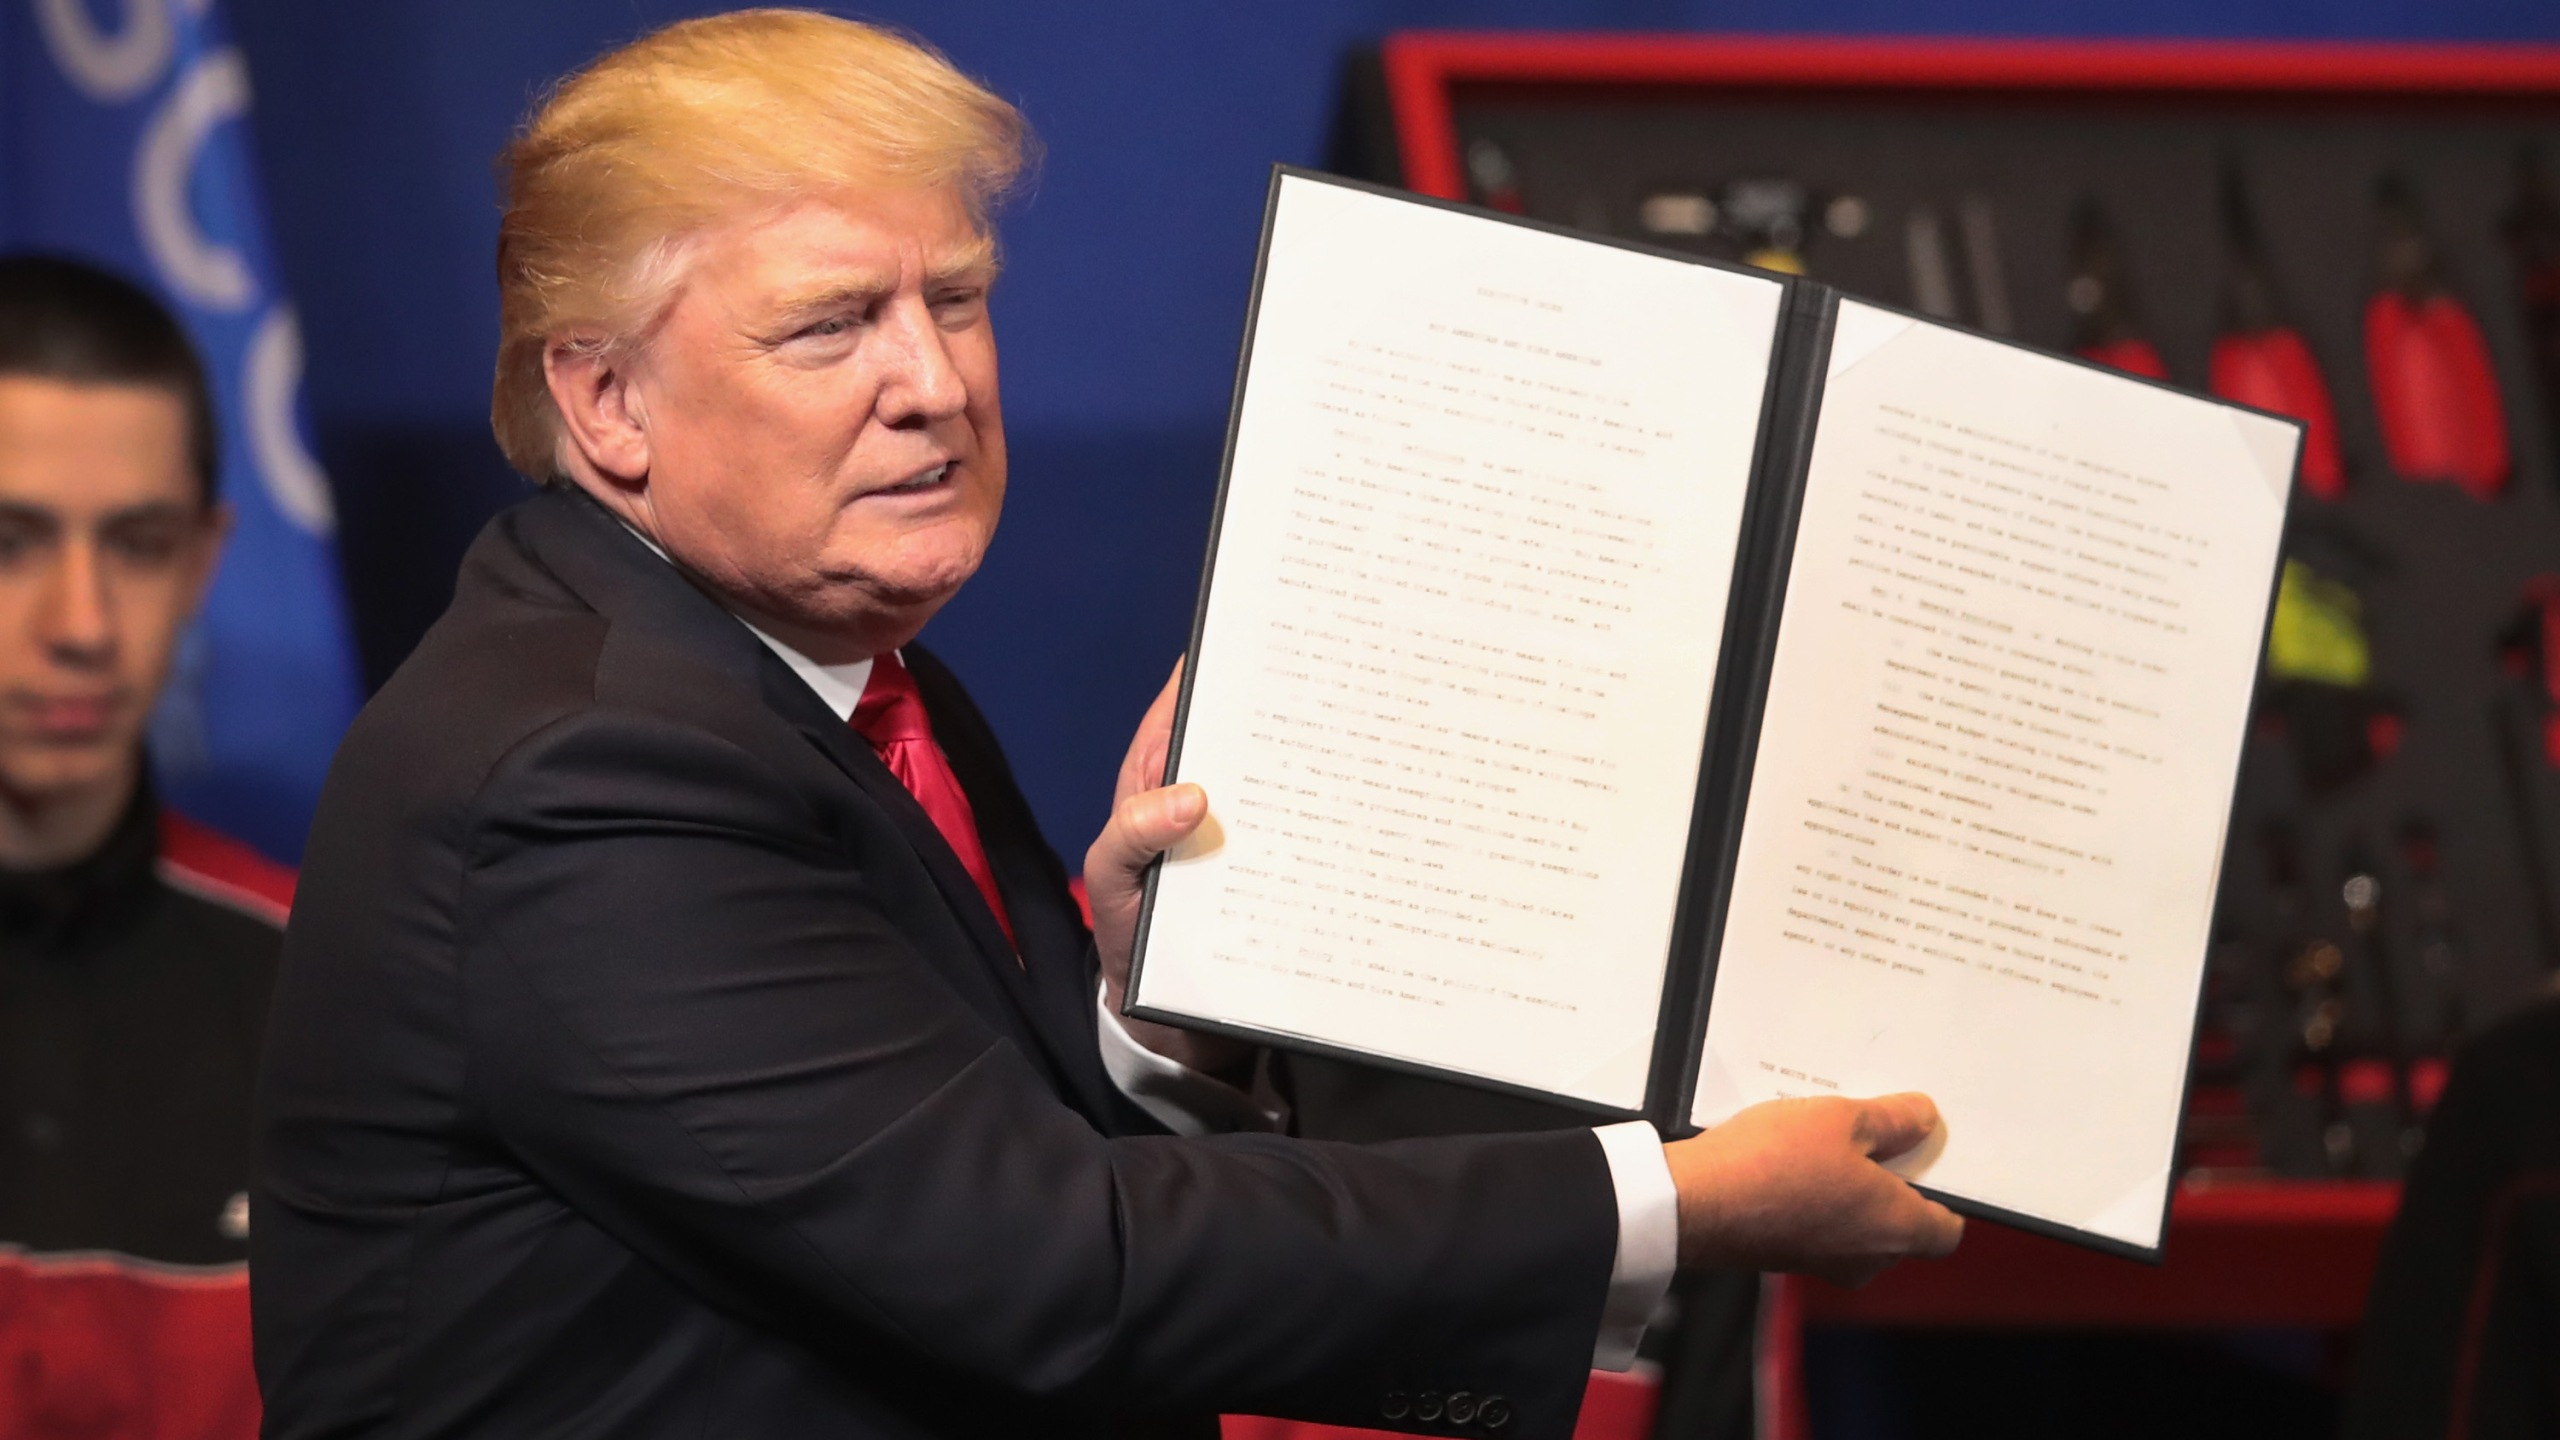 Donald Trump signs an executive order to try to bring jobs back to American workers and revamp the H-1B visa guest worker program during a visit to the headquarters of tool manufacturer Snap-On on April 18, 2017 in Kenosha, Wisconsin. (Credit: Scott Olson/Getty Images)